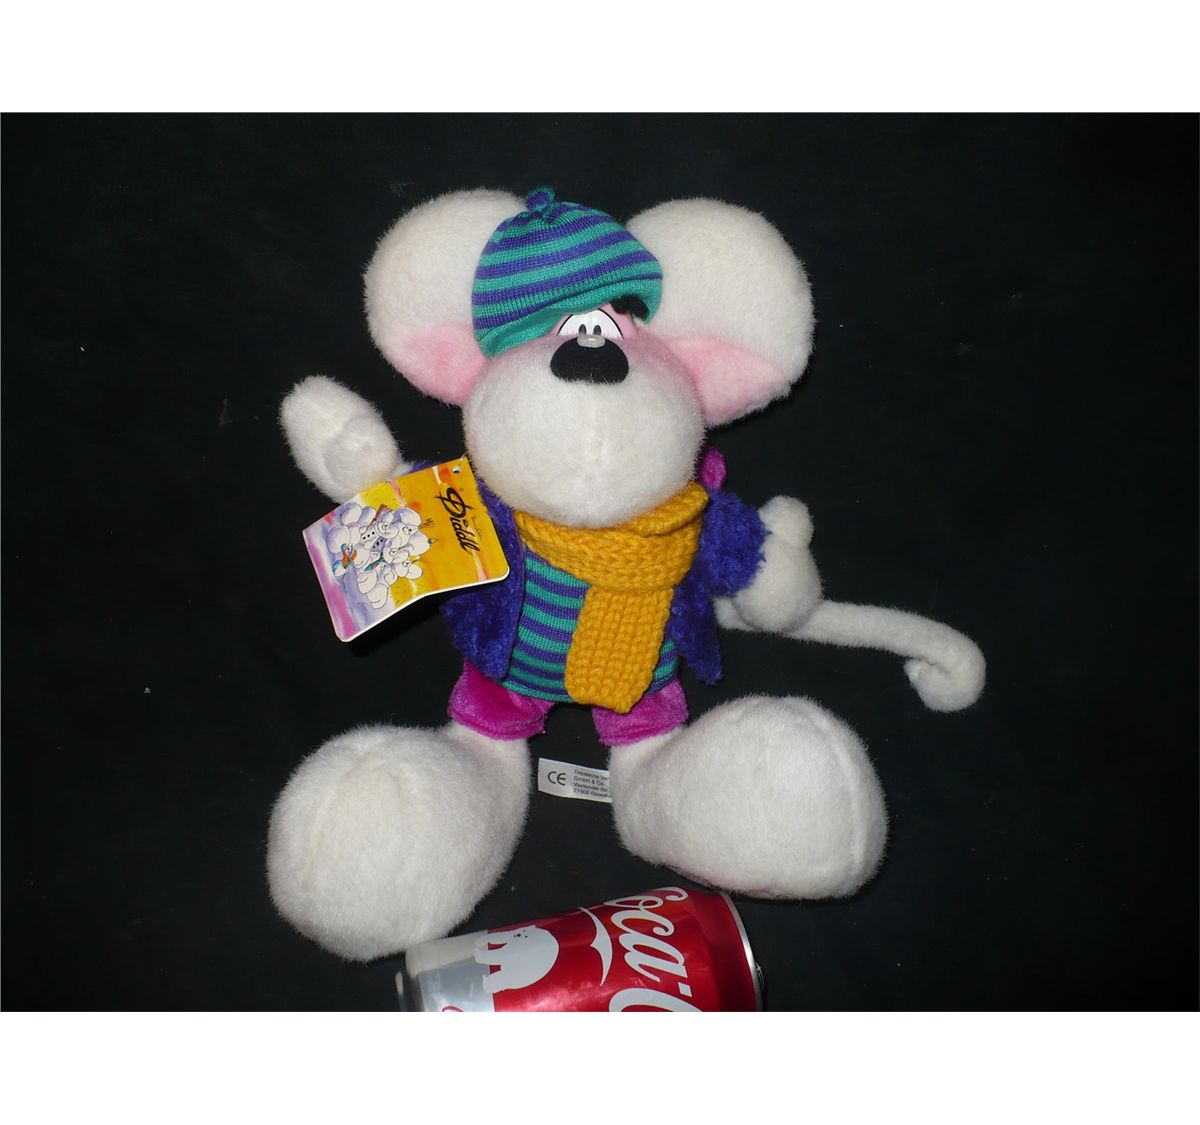 Image 1   DIDDL MOUSE STUFFED ANIMAL BY THOMAS GOLETZ WITH WINTER OUTFIT  AND TAG ... bbe67edf0